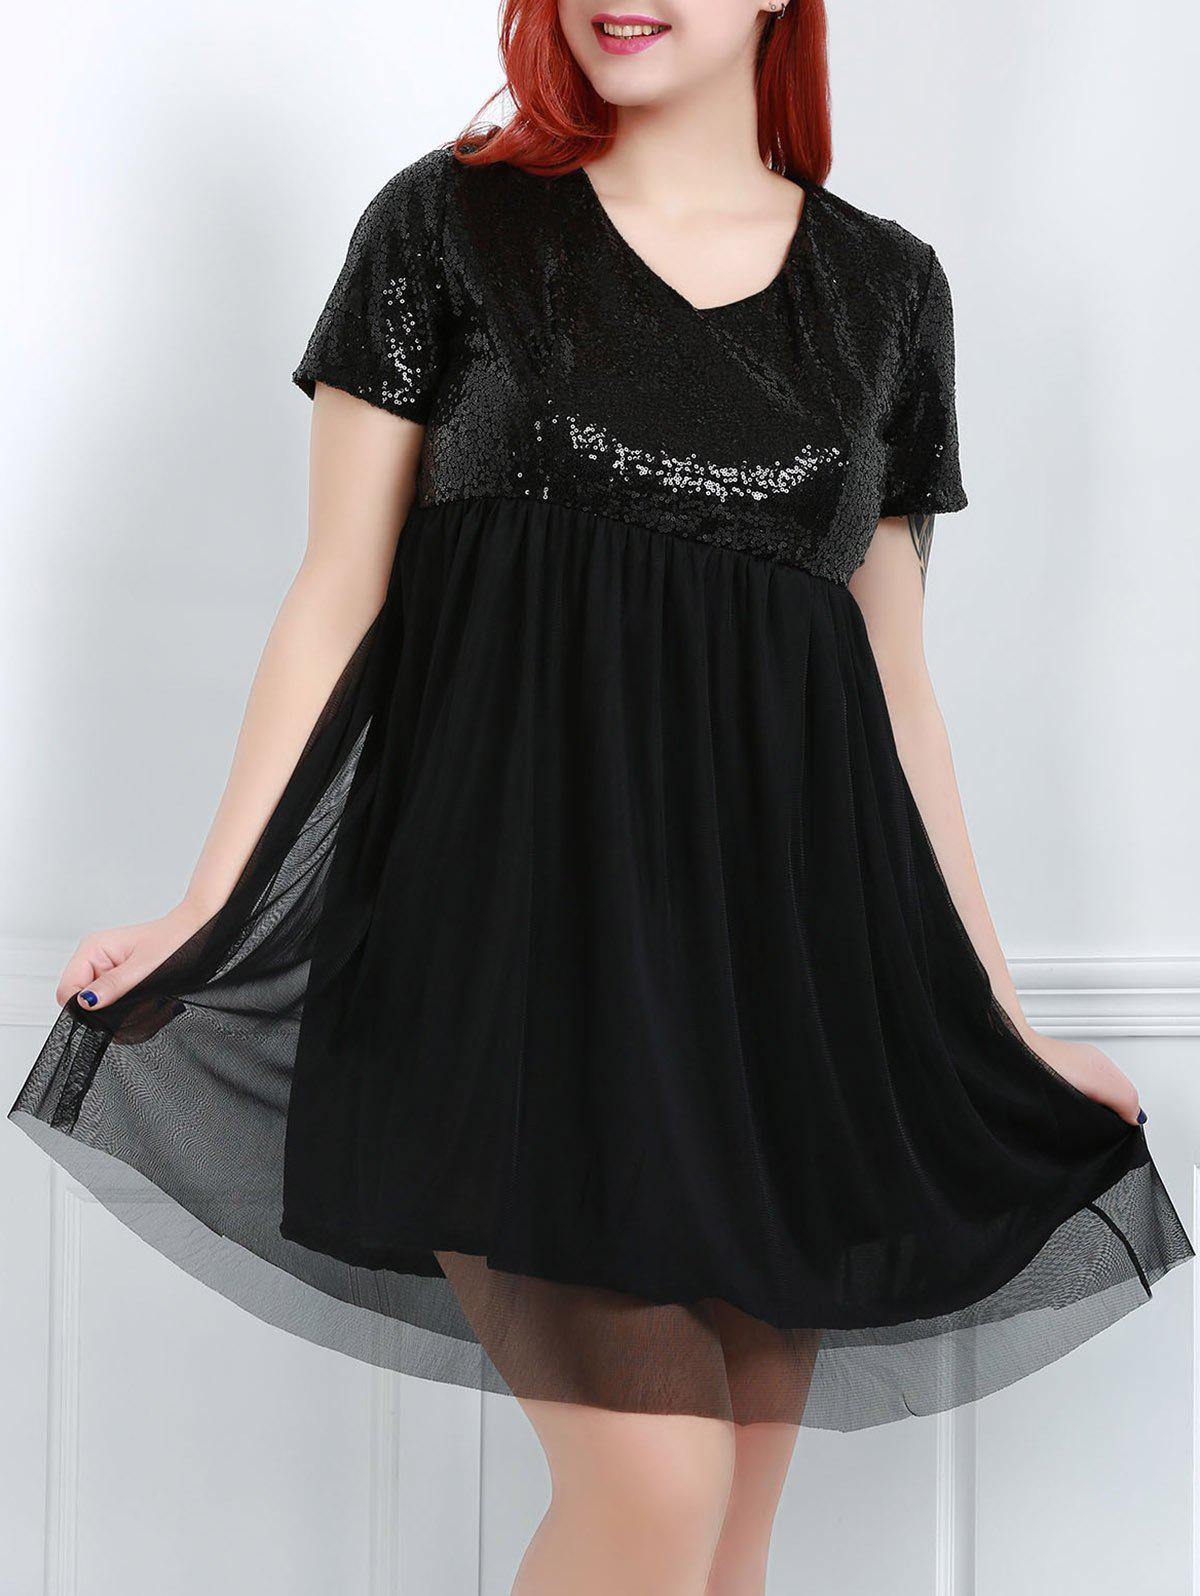 Stylish Women's V-Neck Short Sleeve Sequins Plus Size Dress - BLACK XL